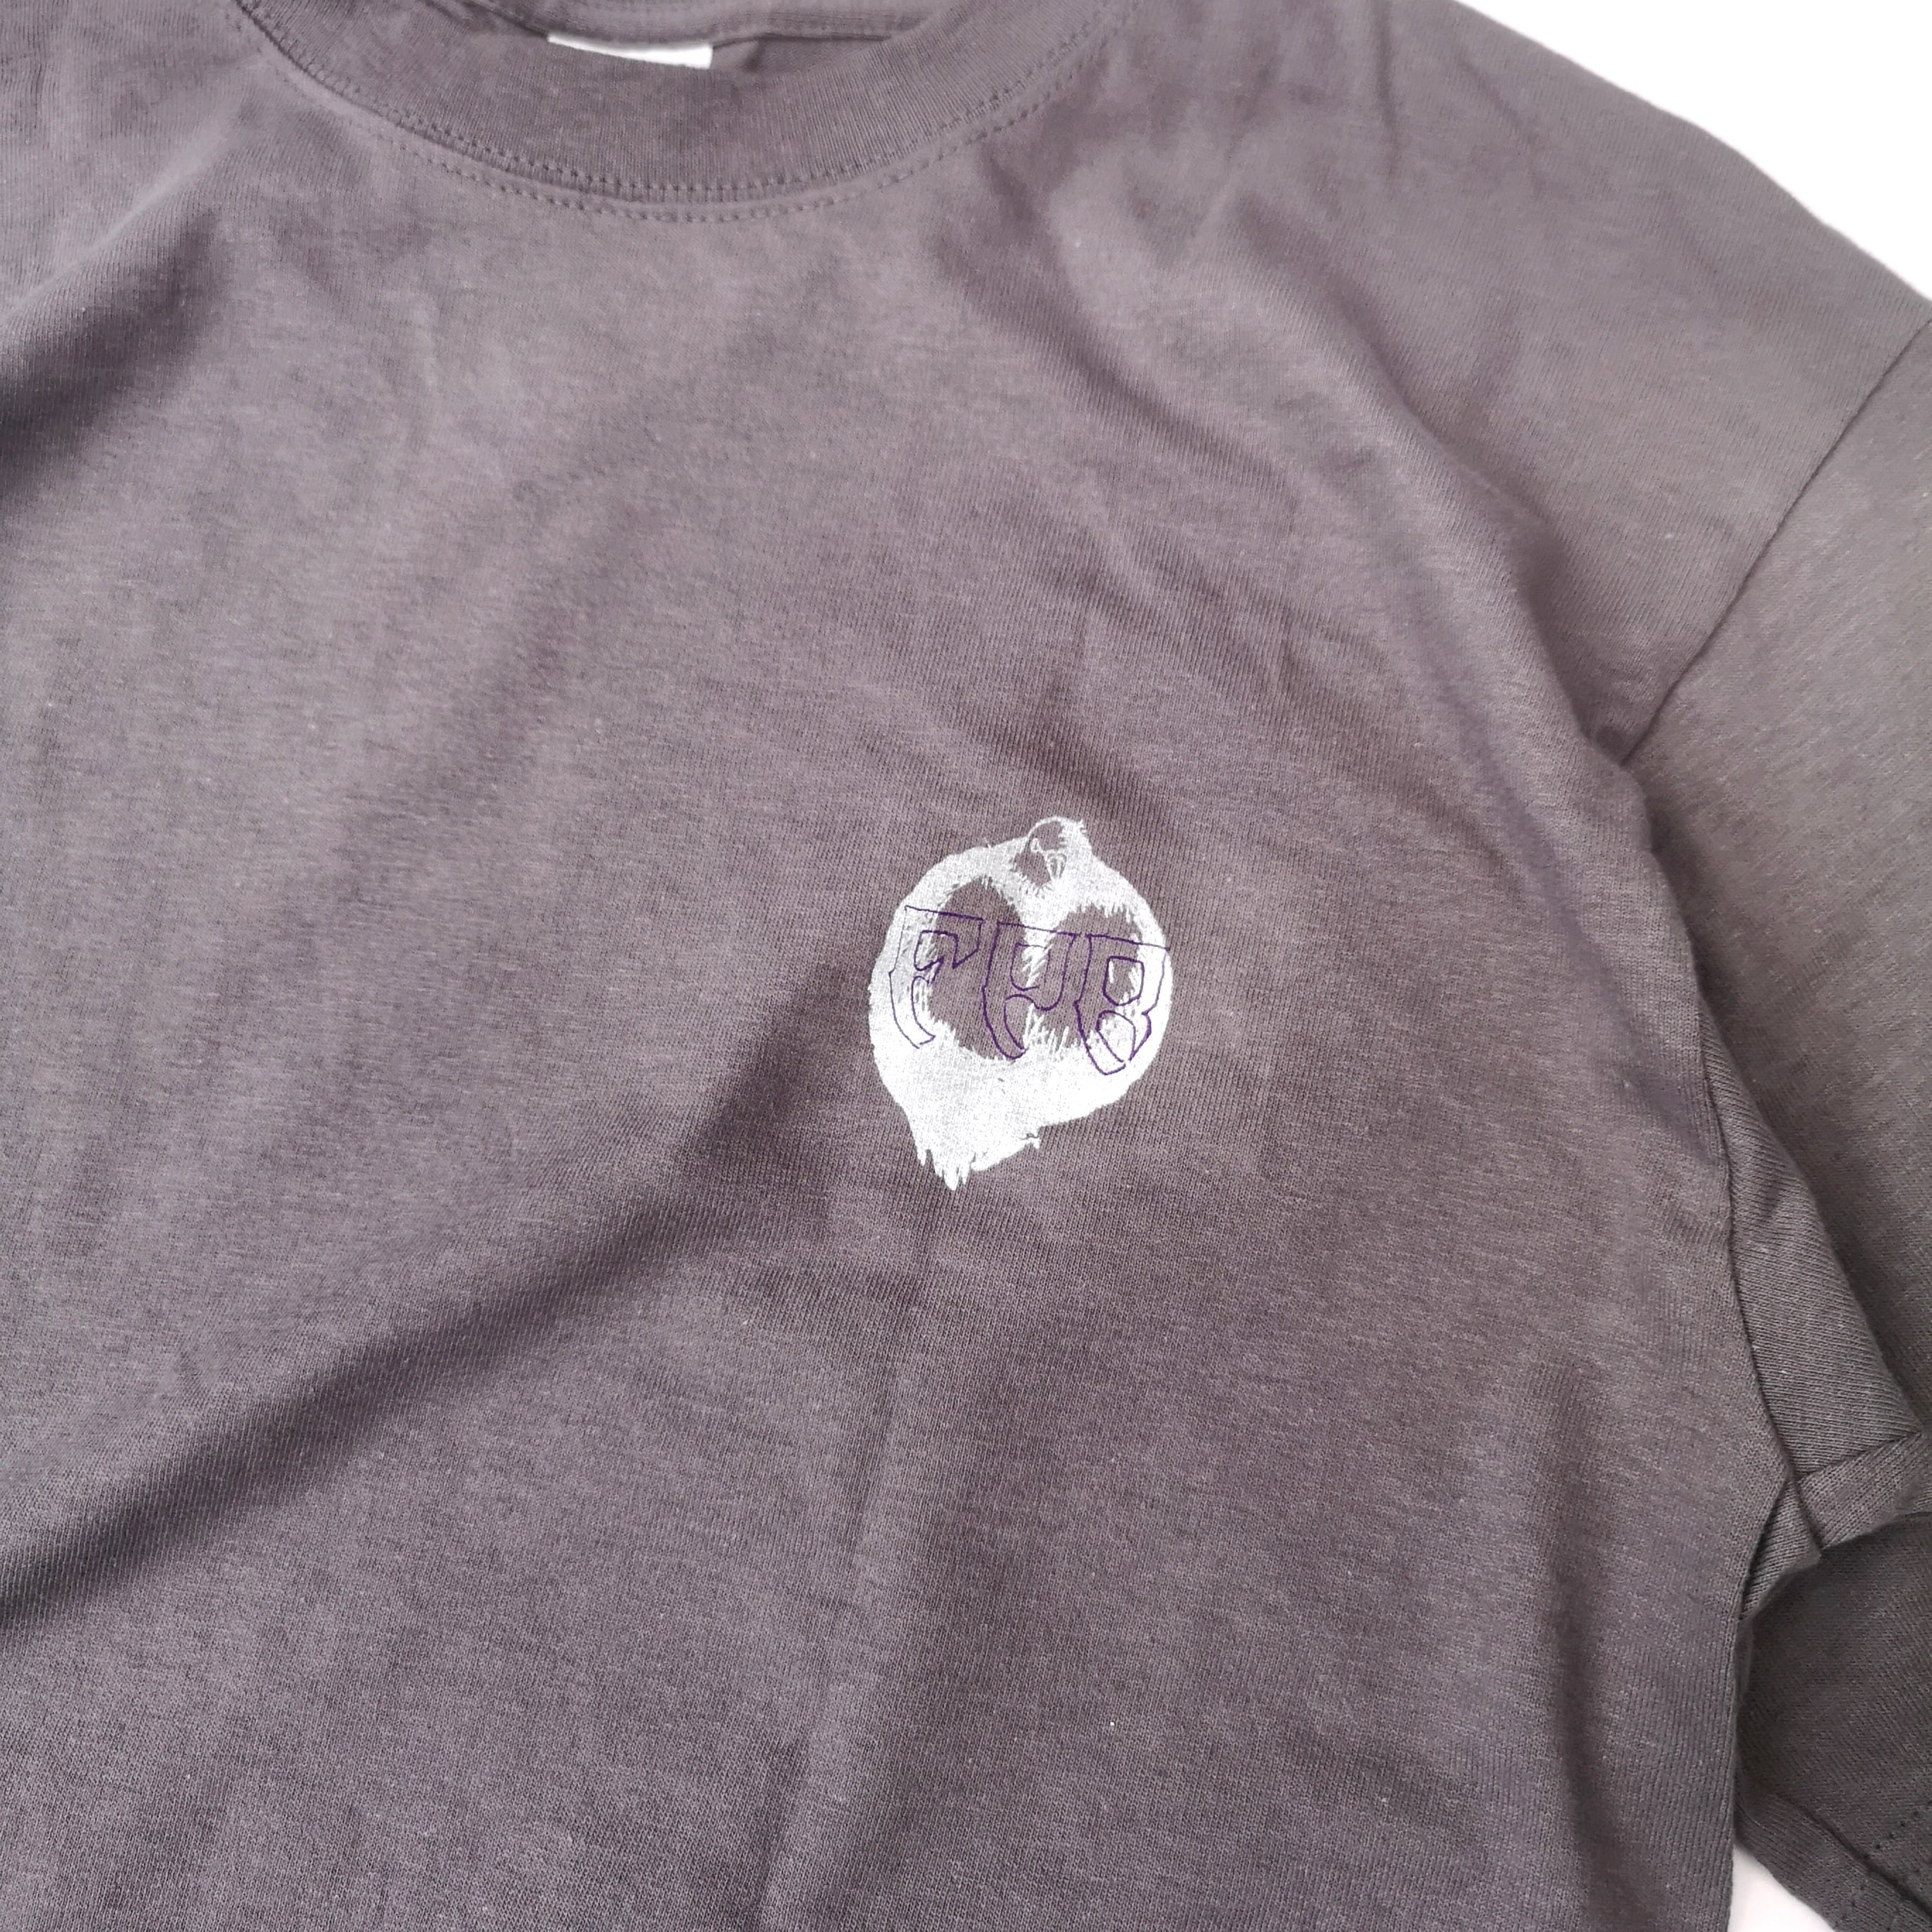 FAT PIGEON RECORDS TEE 2nd.